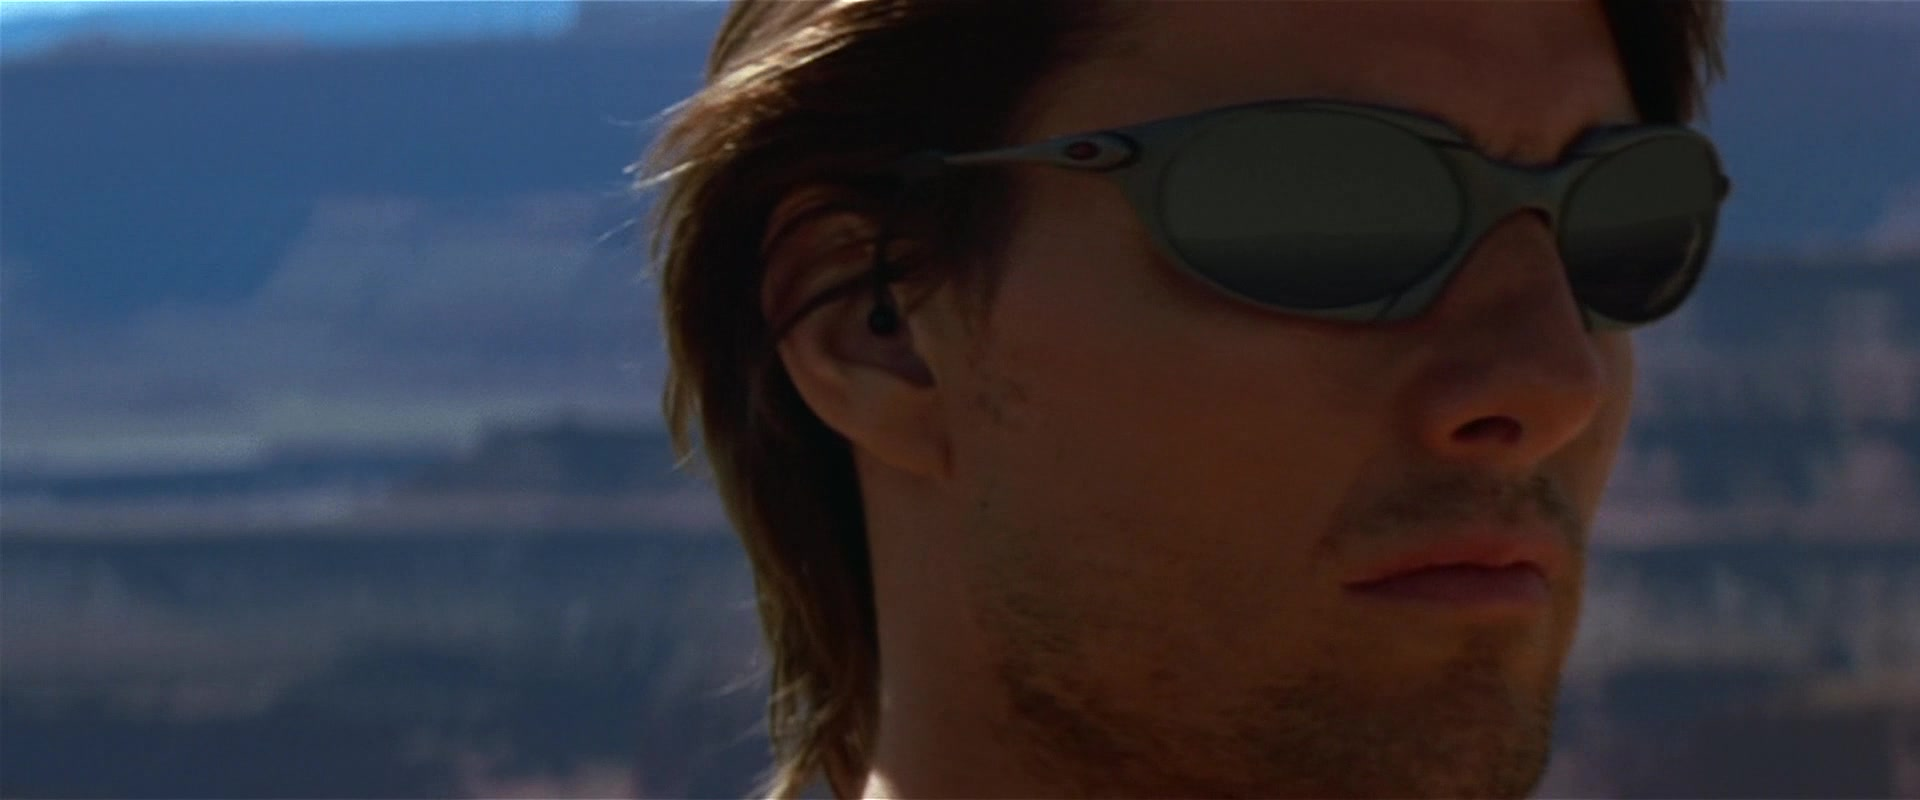 b39970bd1b Oakley Sunglasses (Romeo Model) Worn by Tom Cruise in MISSION  IMPOSSIBLE  II (